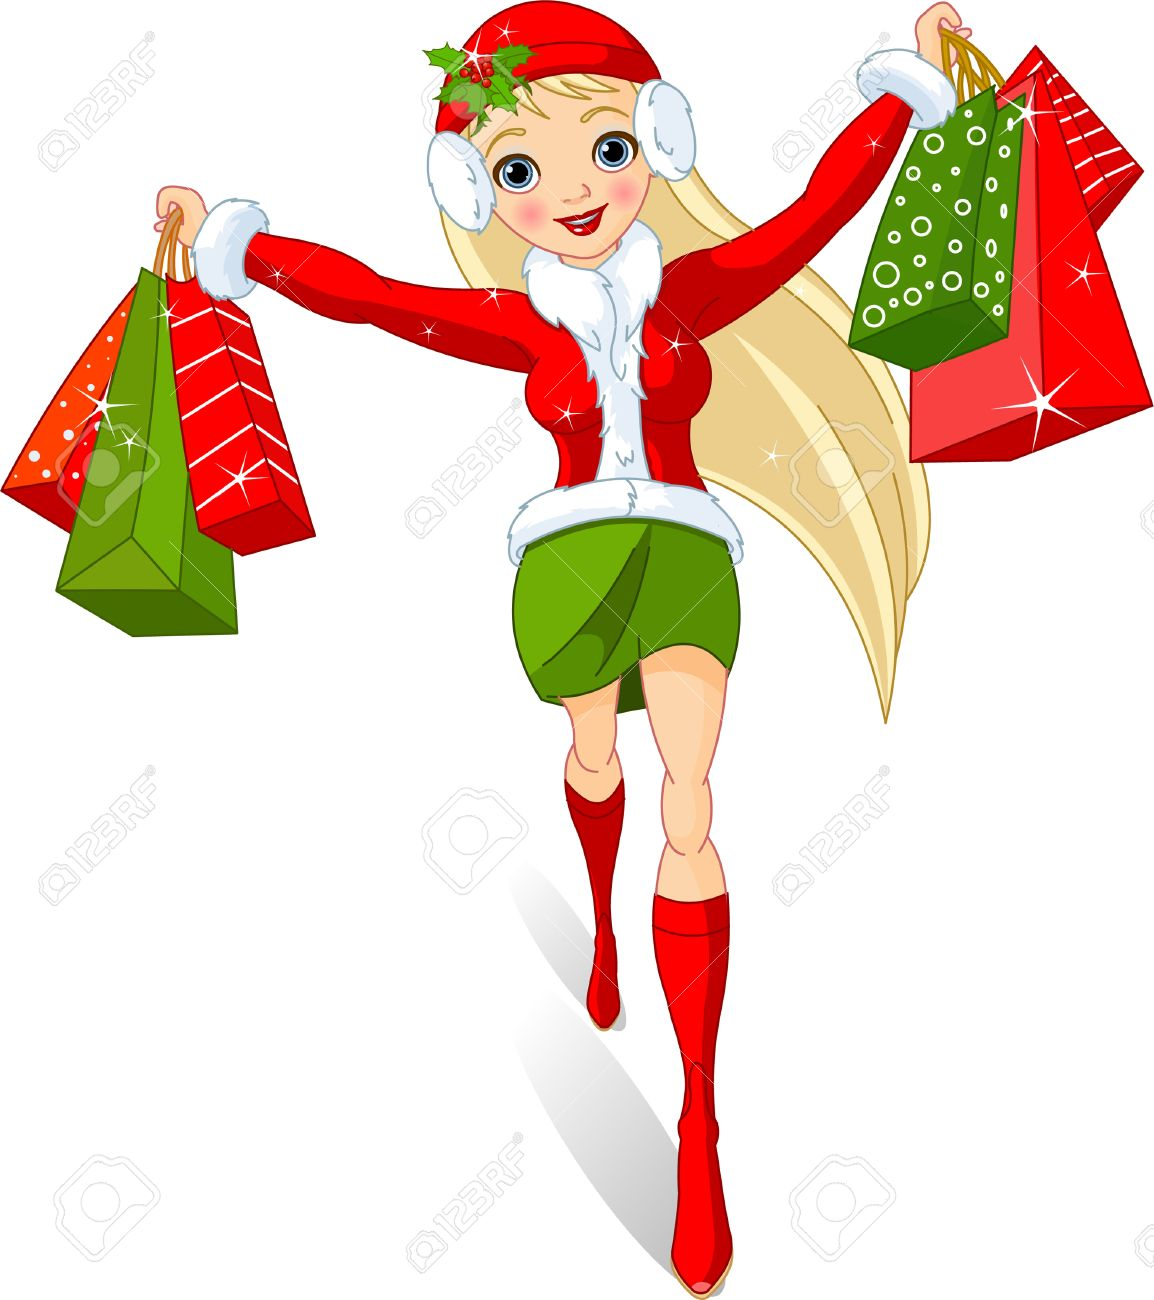 Christmas shopping. Illustration of a girl with shopping bags.